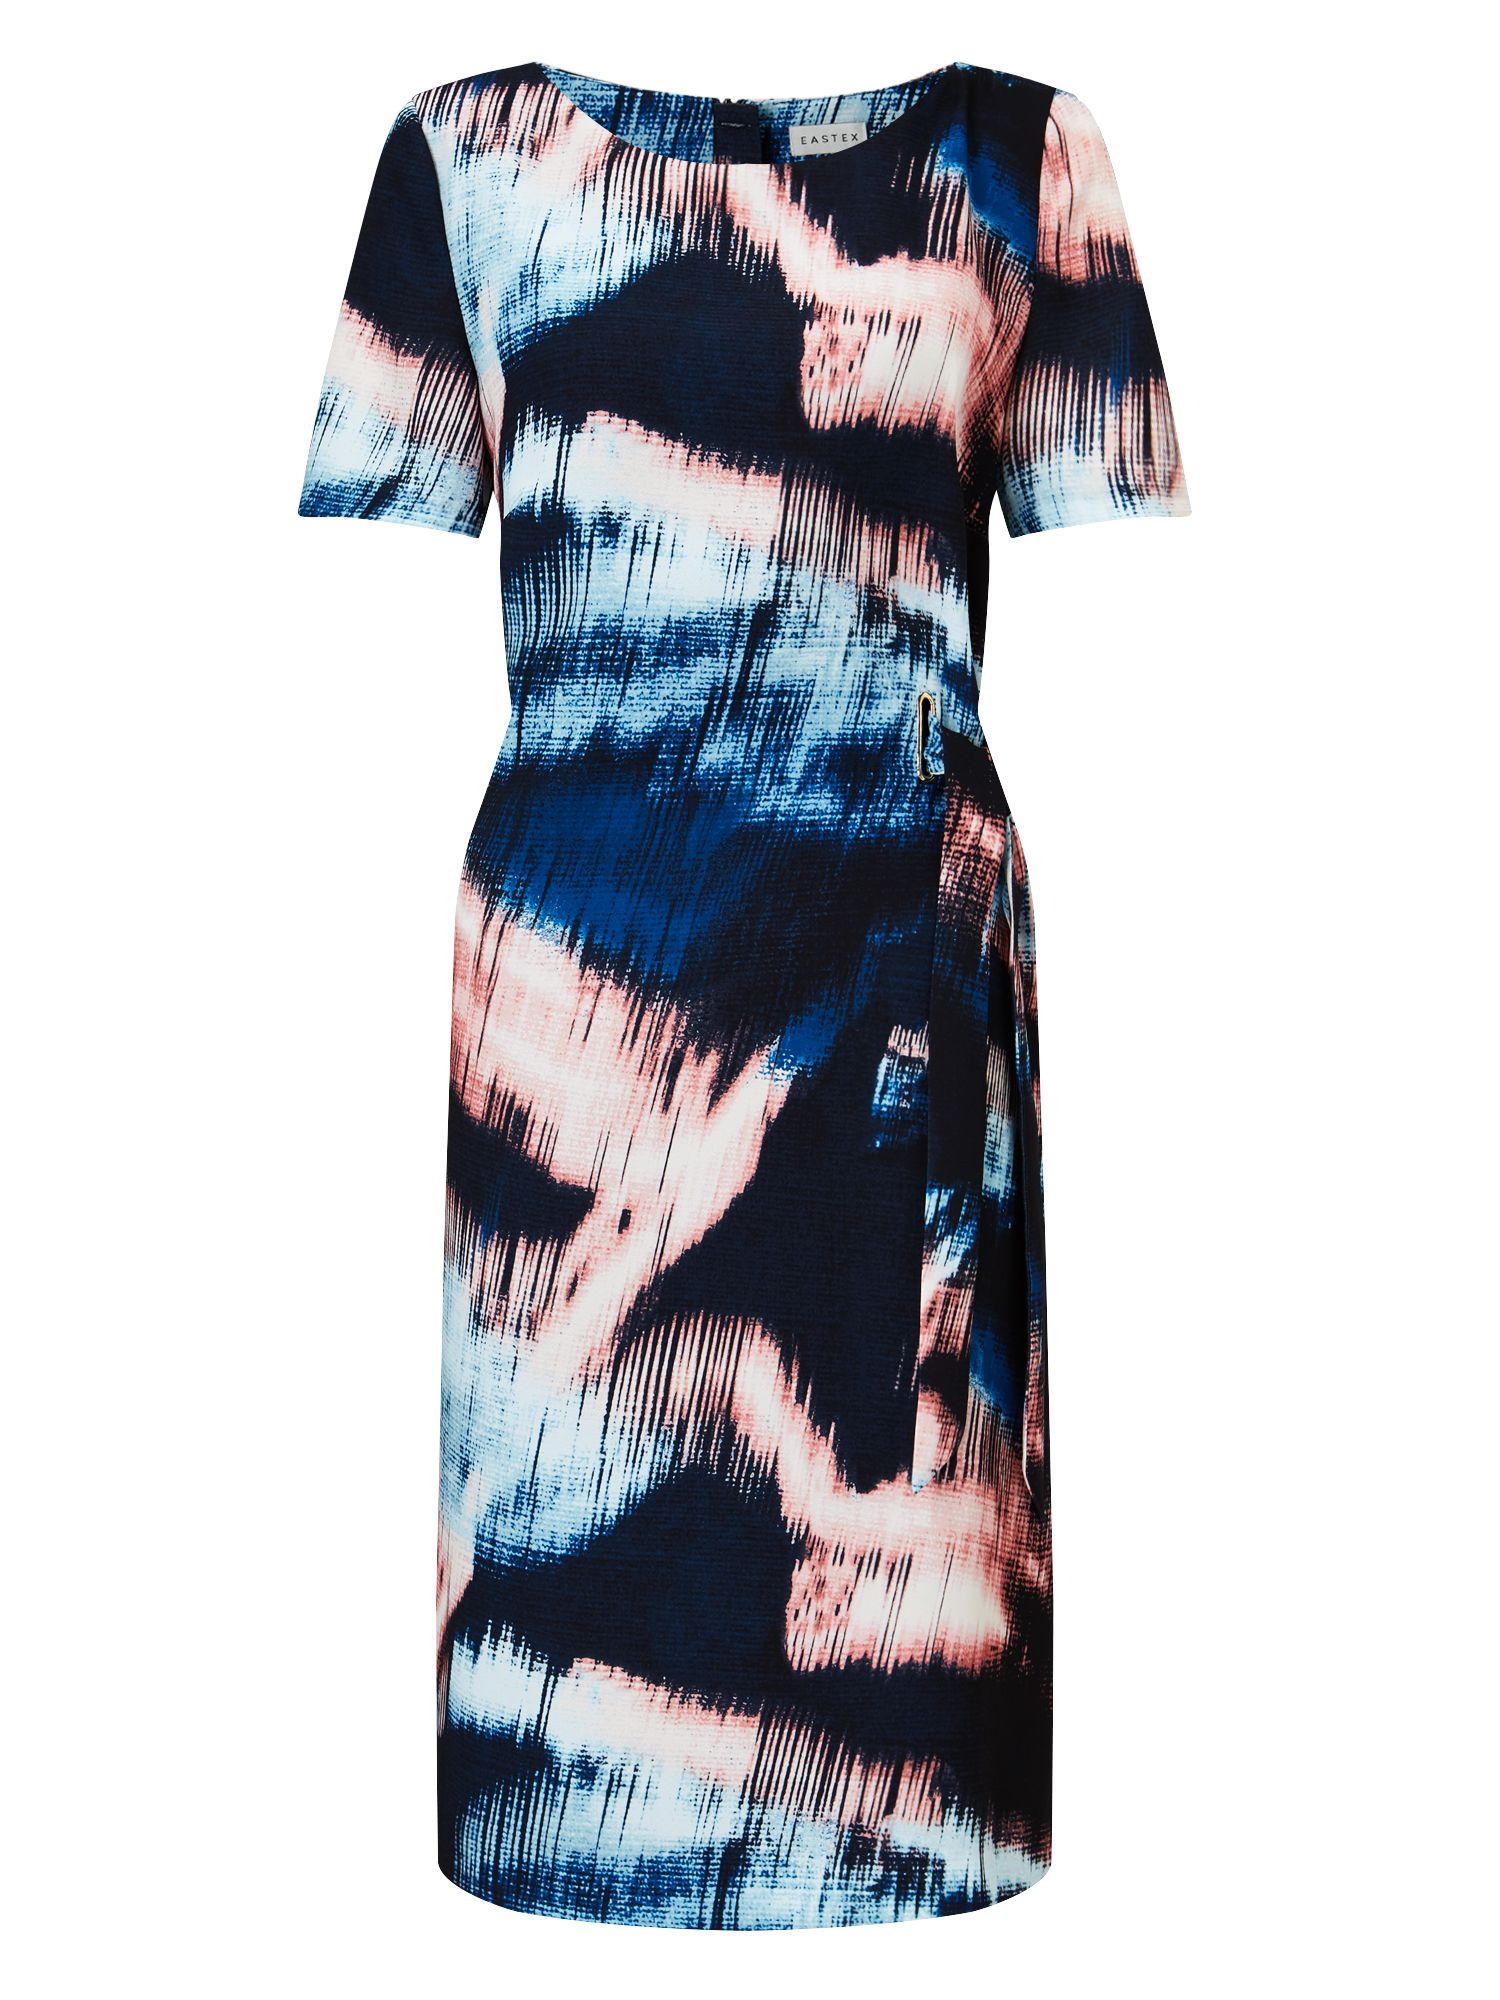 Eastex Sky Reflection Print Dress, Multi-Coloured